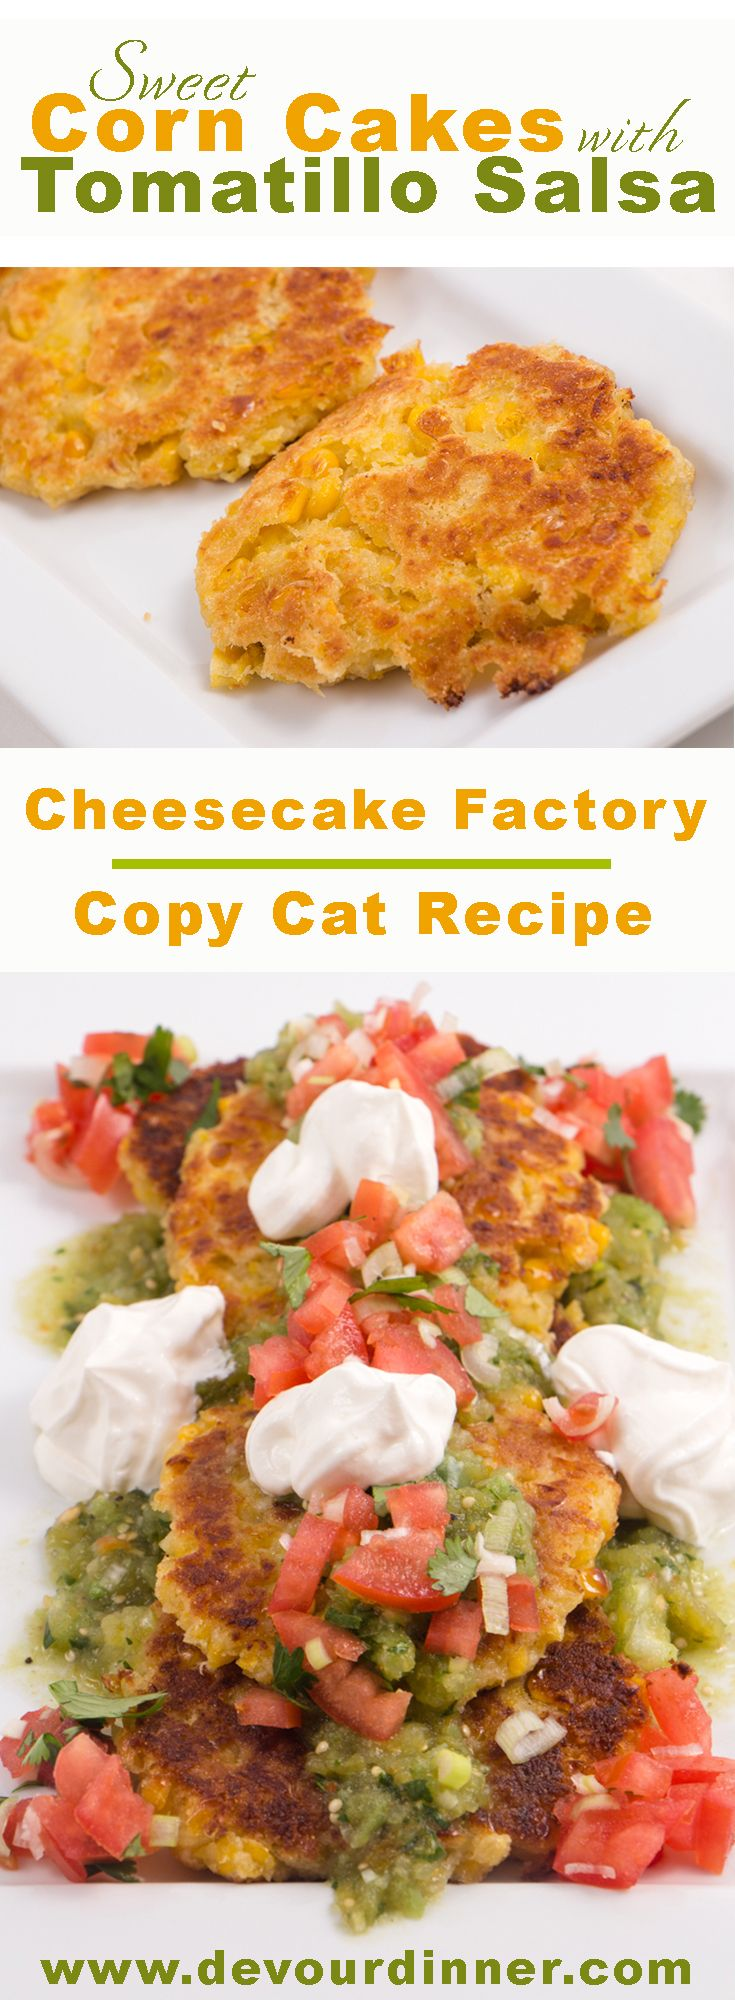 Sweet Corn Cakes | Cheesecake Factory Copy Cat Recipe - Devour Dinner.  Delicious and yummy full of flavor in these Sweet Corn Cakes.  Copy cat recipe from Cheesecake Factory.